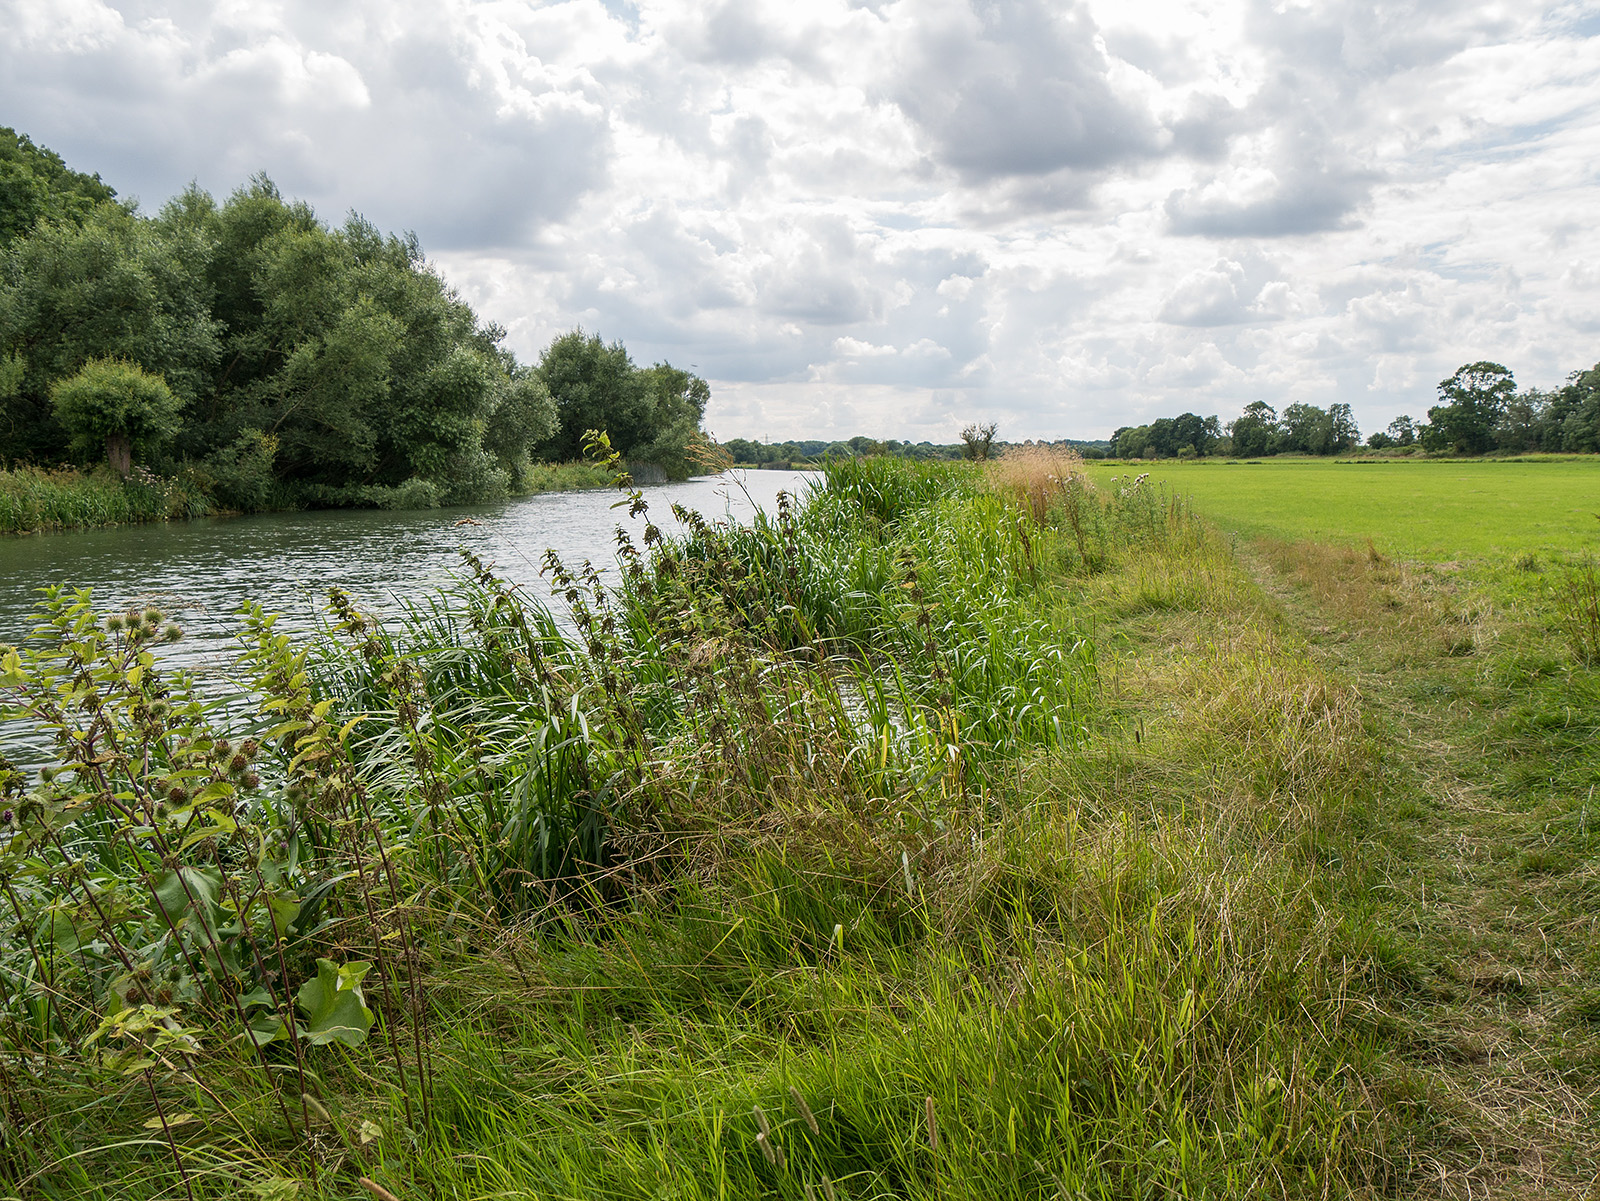 A straight patch of river with rushes by the side